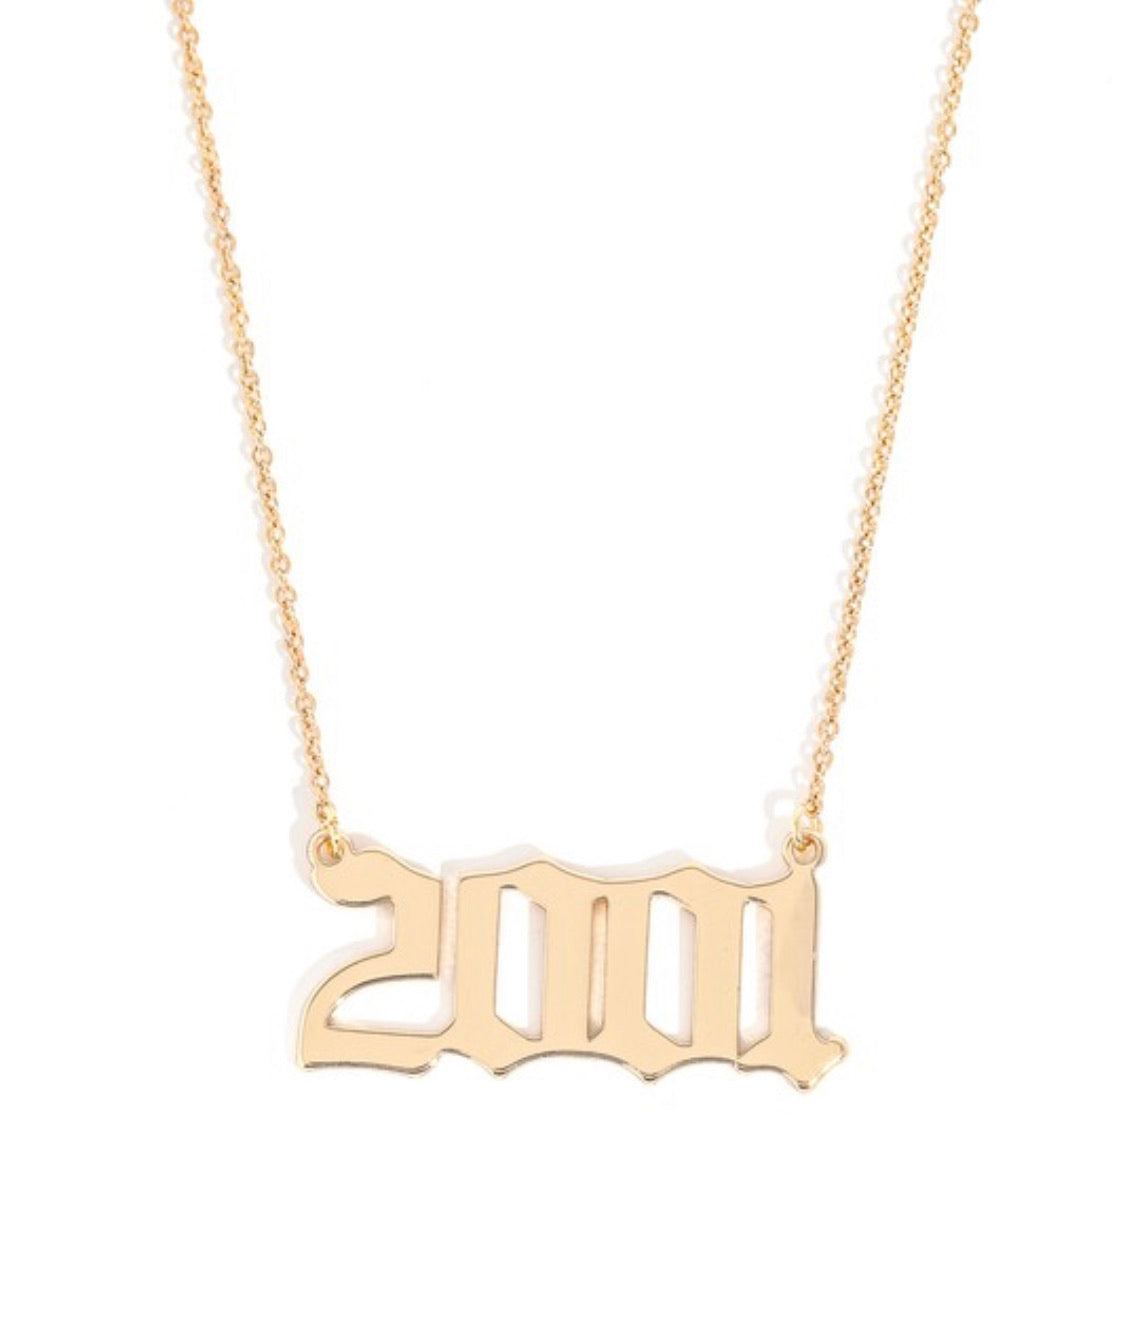 Birth Year Necklace PRE ORDER